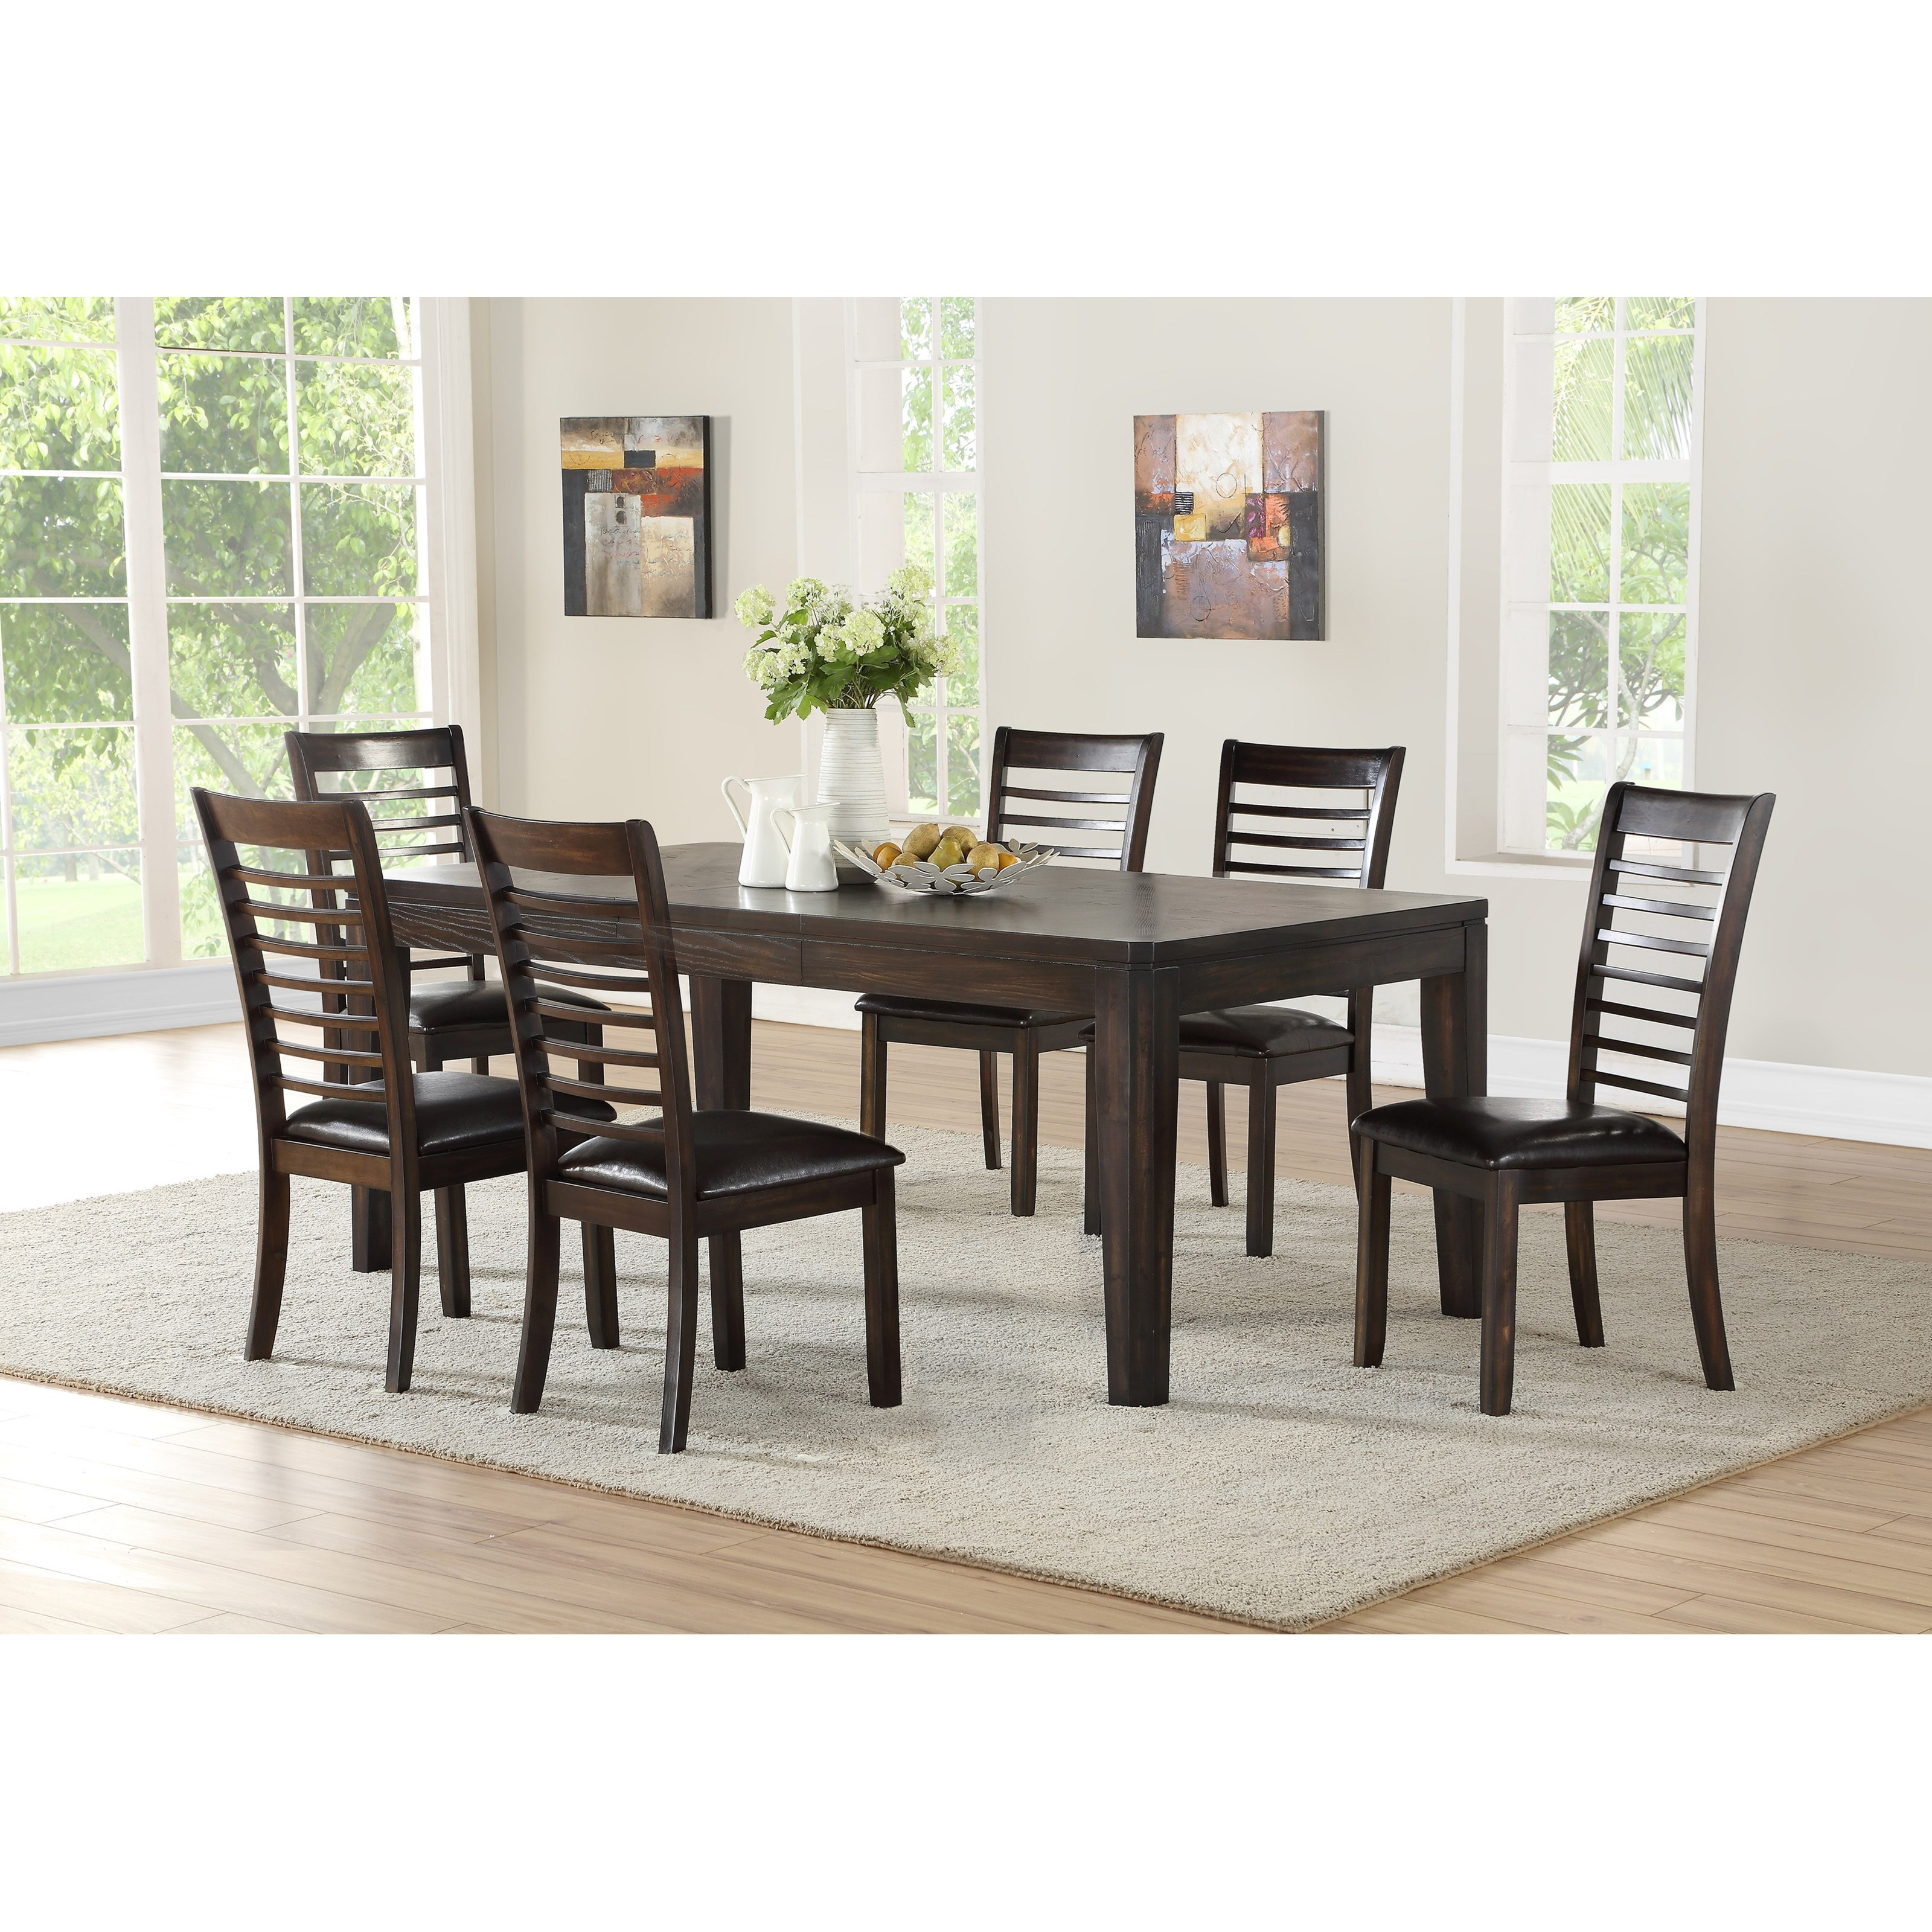 Ally 7 Piece Table and Chair Set by Steve Silver at Northeast Factory Direct